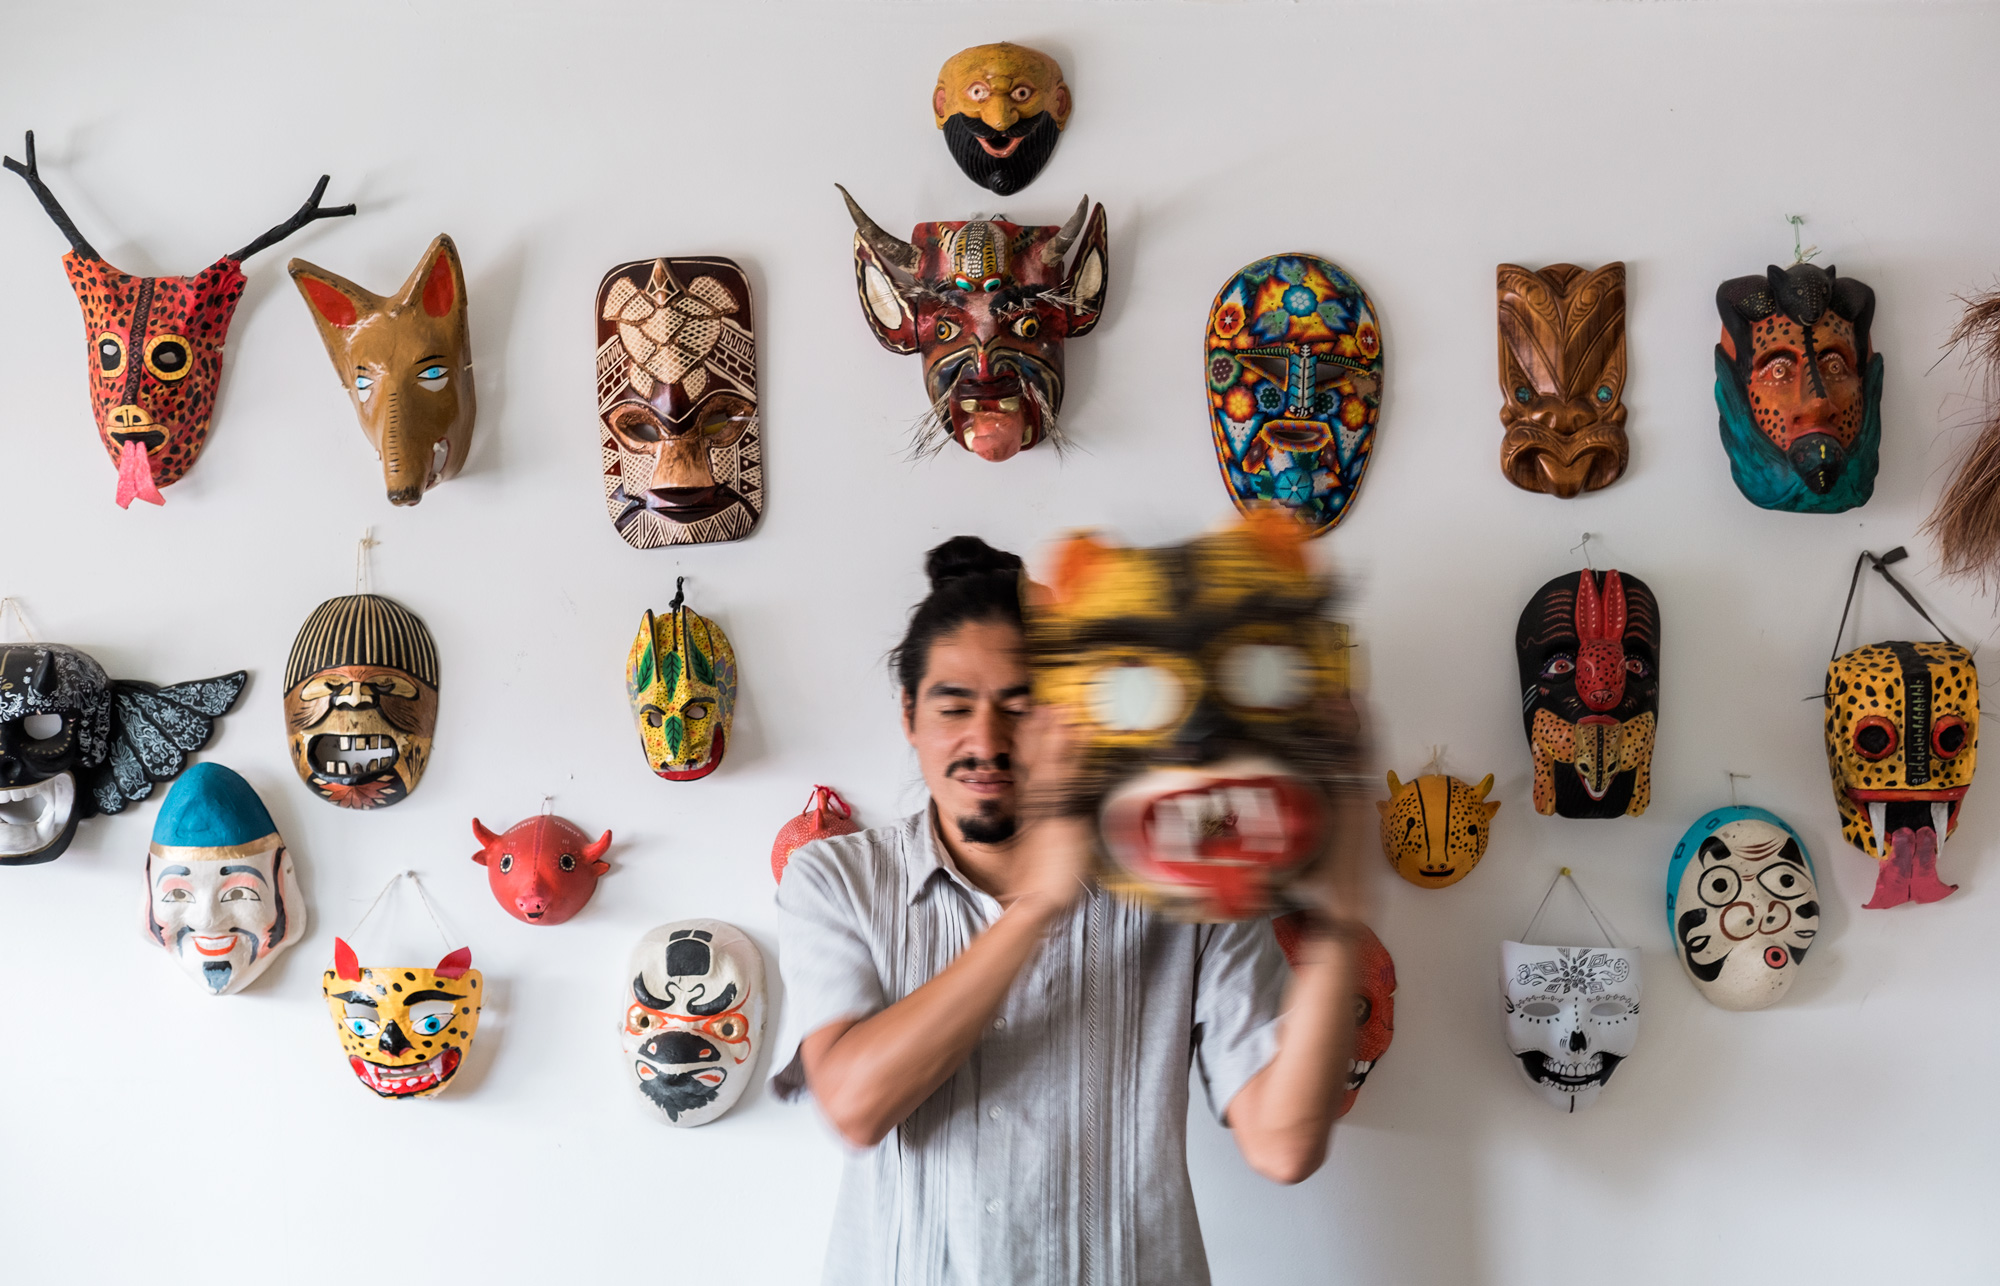 "Saner: Masked But No Stranger - November, 2017 (Interview and portrait)Saner has painted murals and participated in exhibitions everywhere from Morocco to Arkansas, combining contemporary Mexican and ancient Aztec and Mayan iconography with local history and folklore from around the world, as he tries to understand what divides us, and, hopefully unites us. Such travels have strengthened his roots and resolve to be part of a generation that learns from elders, teaches its youth, and creates positive change in a complicated world. ""Sometimes society builds walls,"" he tells me, ""but if we never break them down, we'll never have the opportunity to find out what kind of society we can have."" [Read more]"